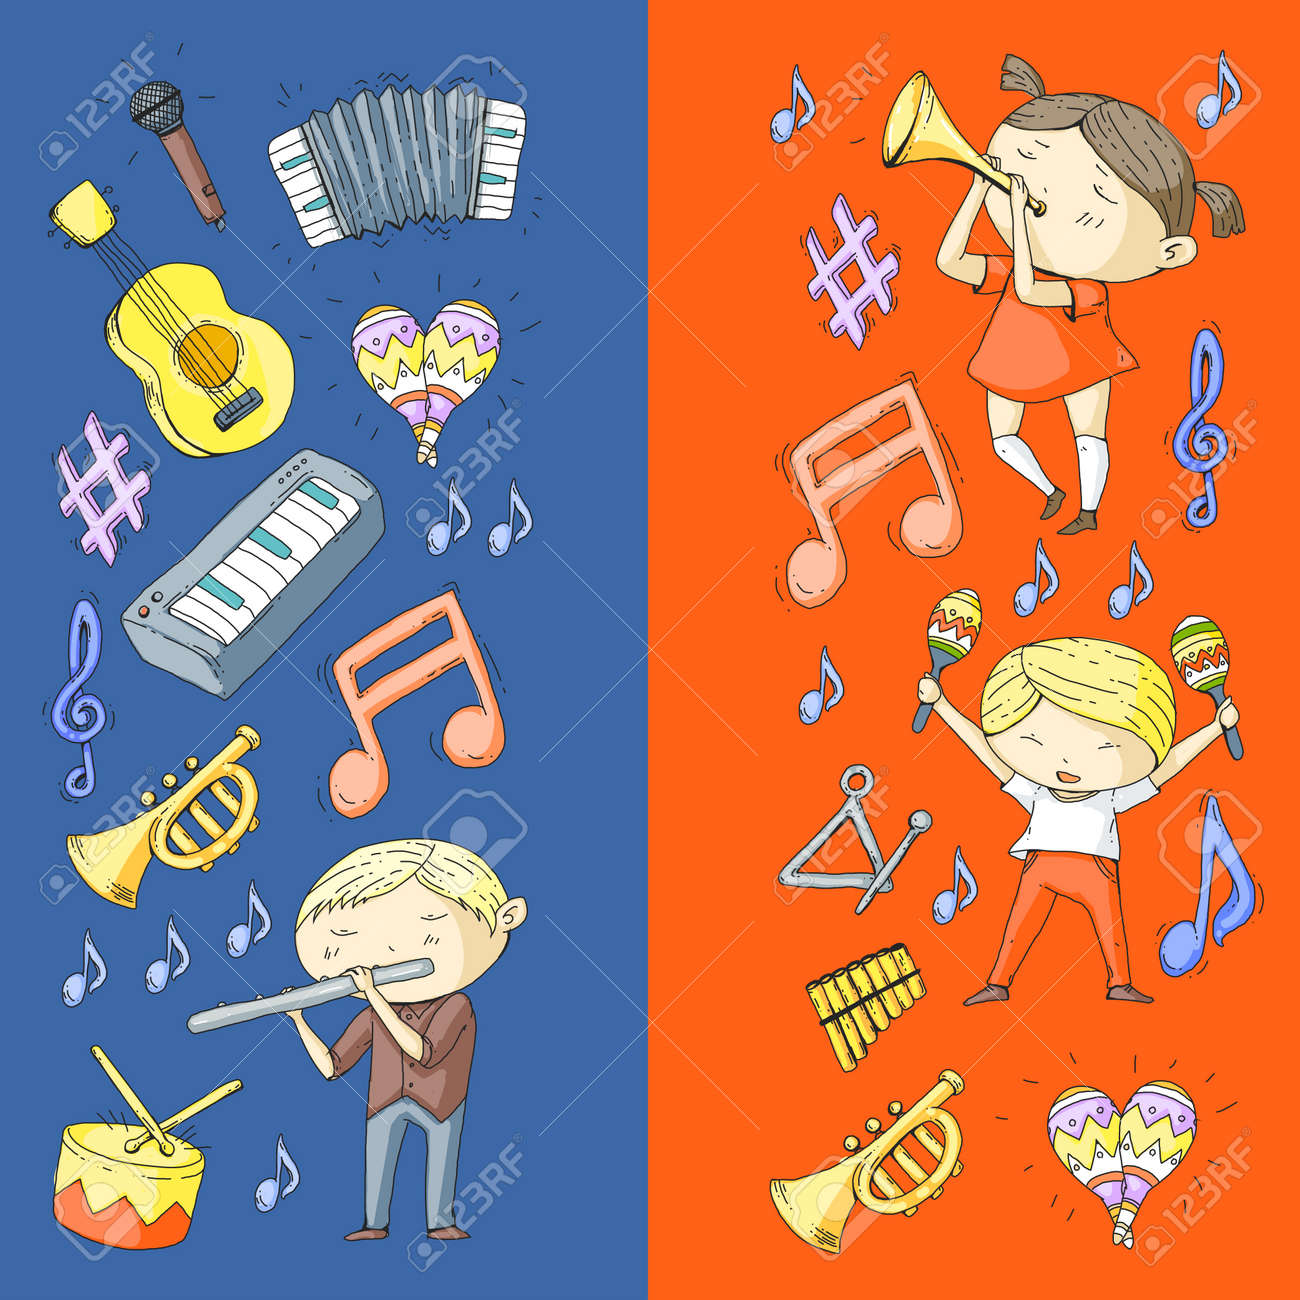 School of music, musical theater. Kindergarten children with music instruments. Boys and girls playing drum, flute, accordion, trumpet, piano. - 92355825